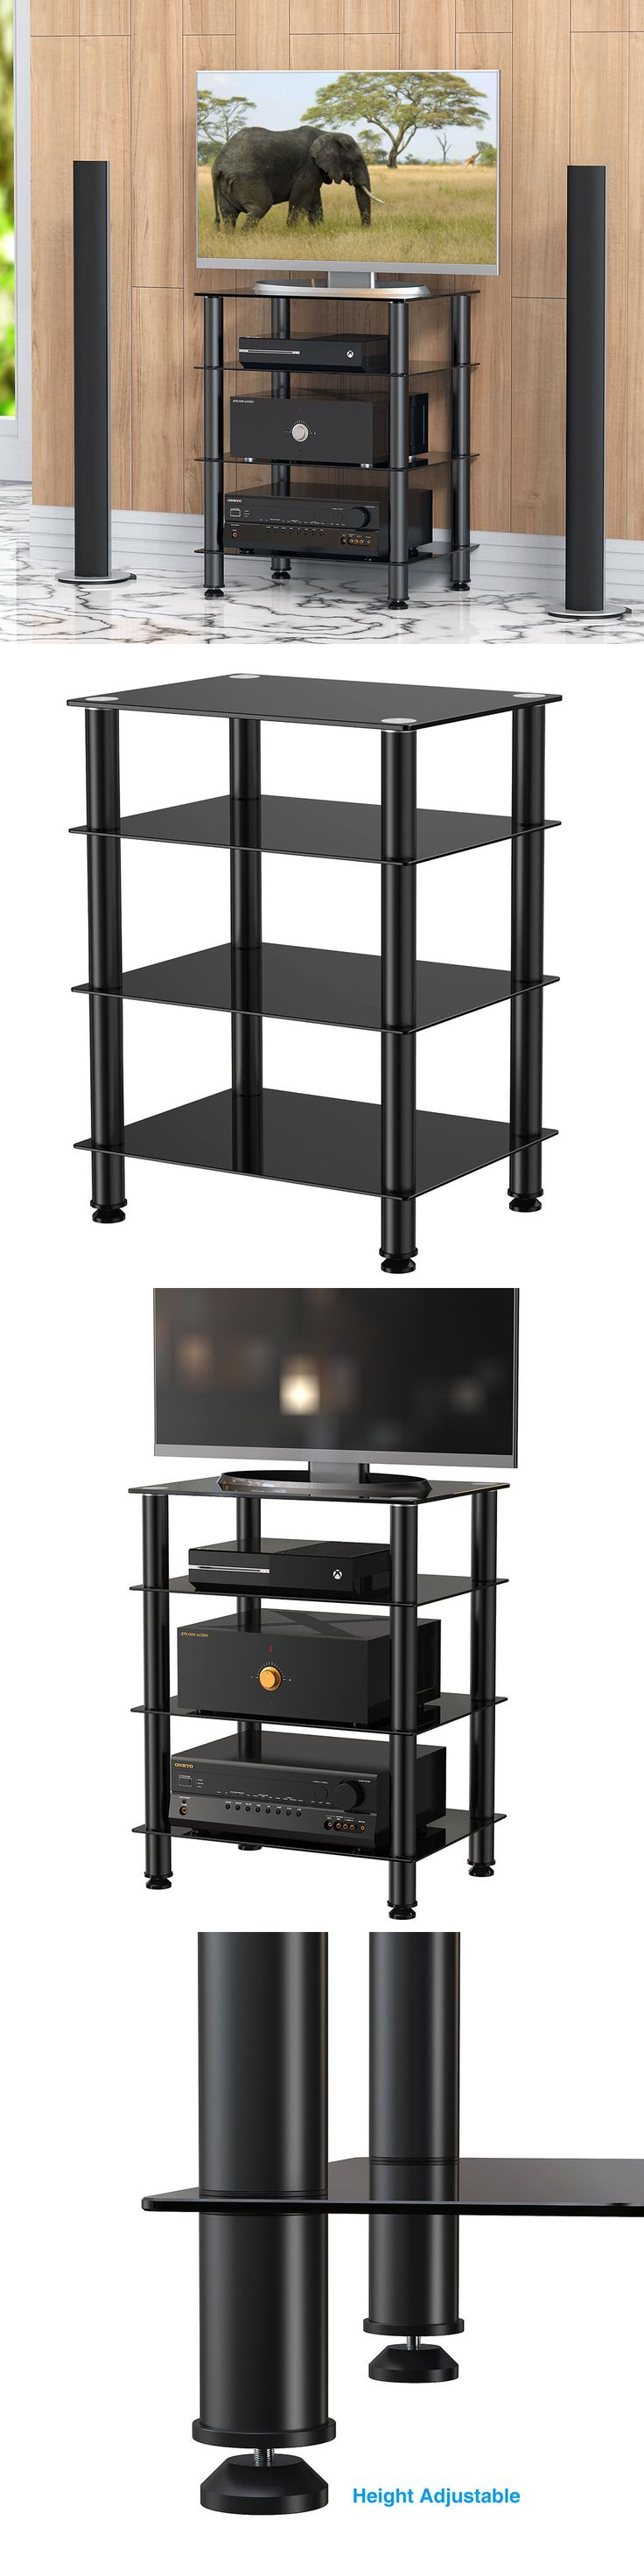 Tv Stereo Stands Cabinets 17 Best Images About Entertainment Units Tv Stands On Pinterest